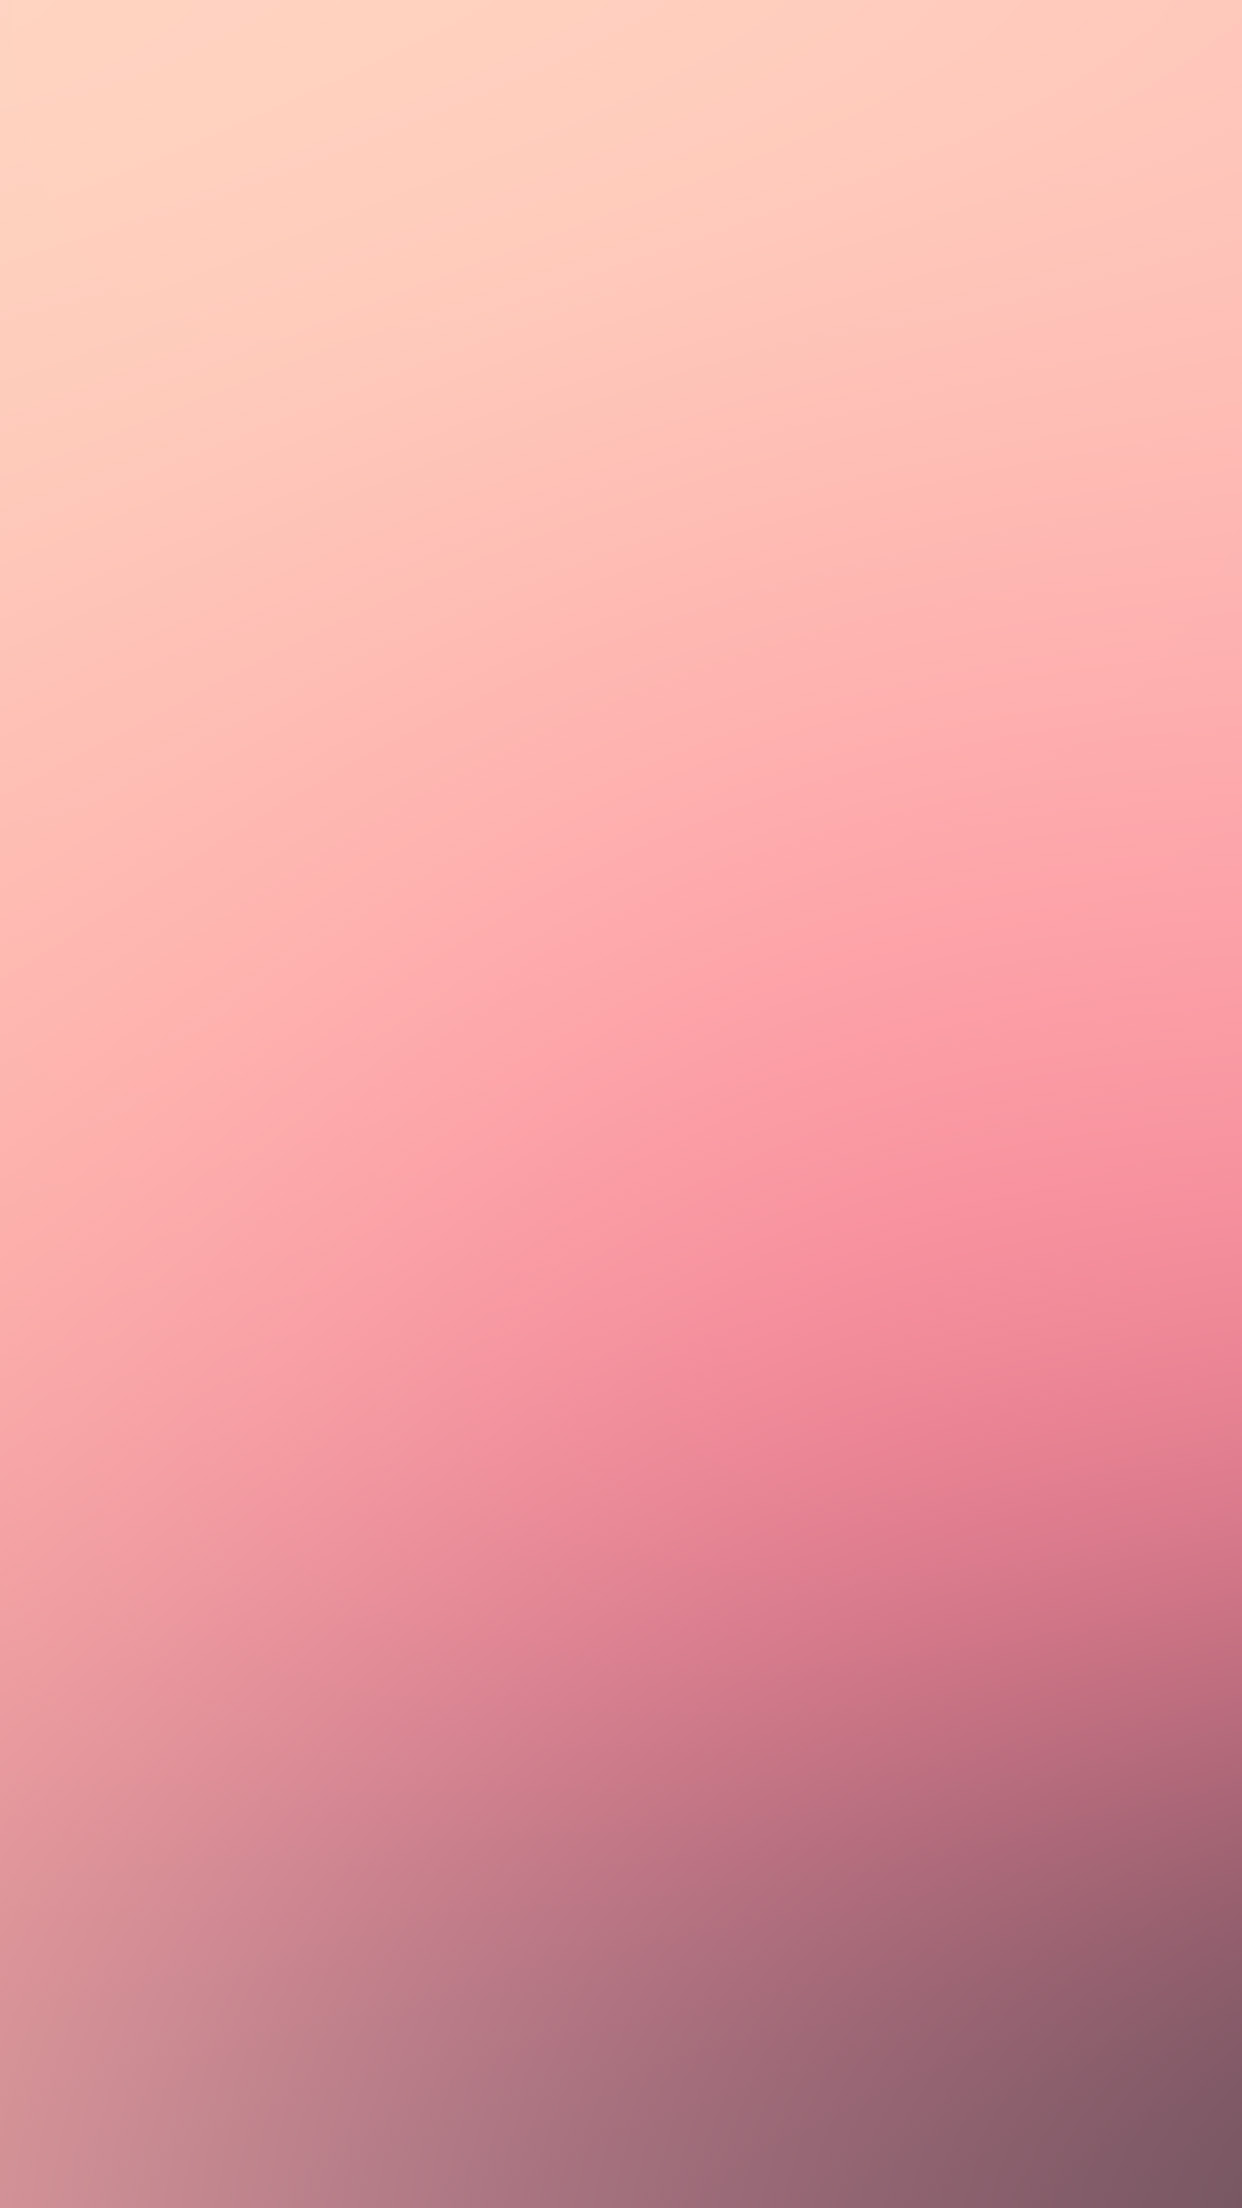 Rose Gold Cute Pink Wallpaper For Iphone Rose Gold Hd Wallpapers